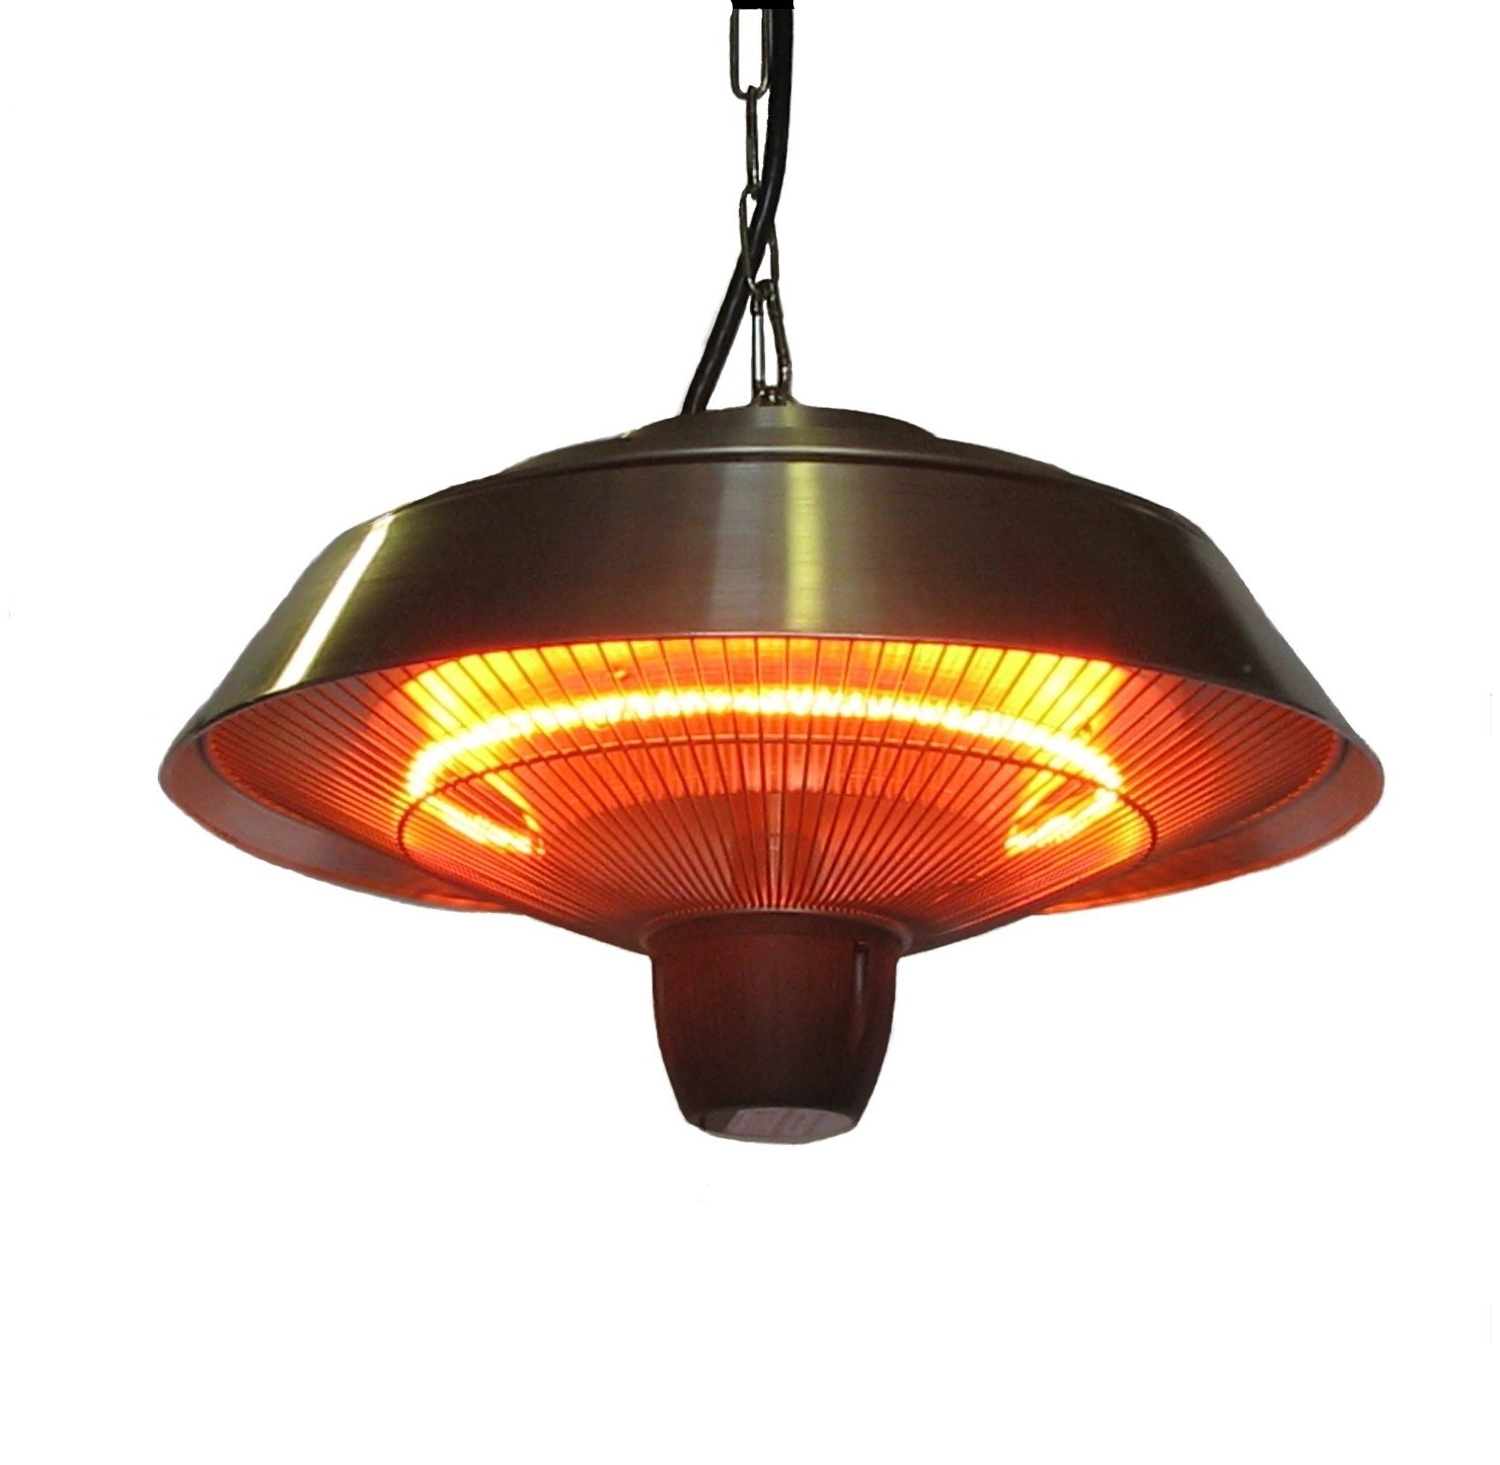 Best And Newest Interior: Hunter Ceiling Fan Light Kits Menards Ceiling, Menards Within Quality Outdoor Ceiling Fans (Gallery 11 of 20)